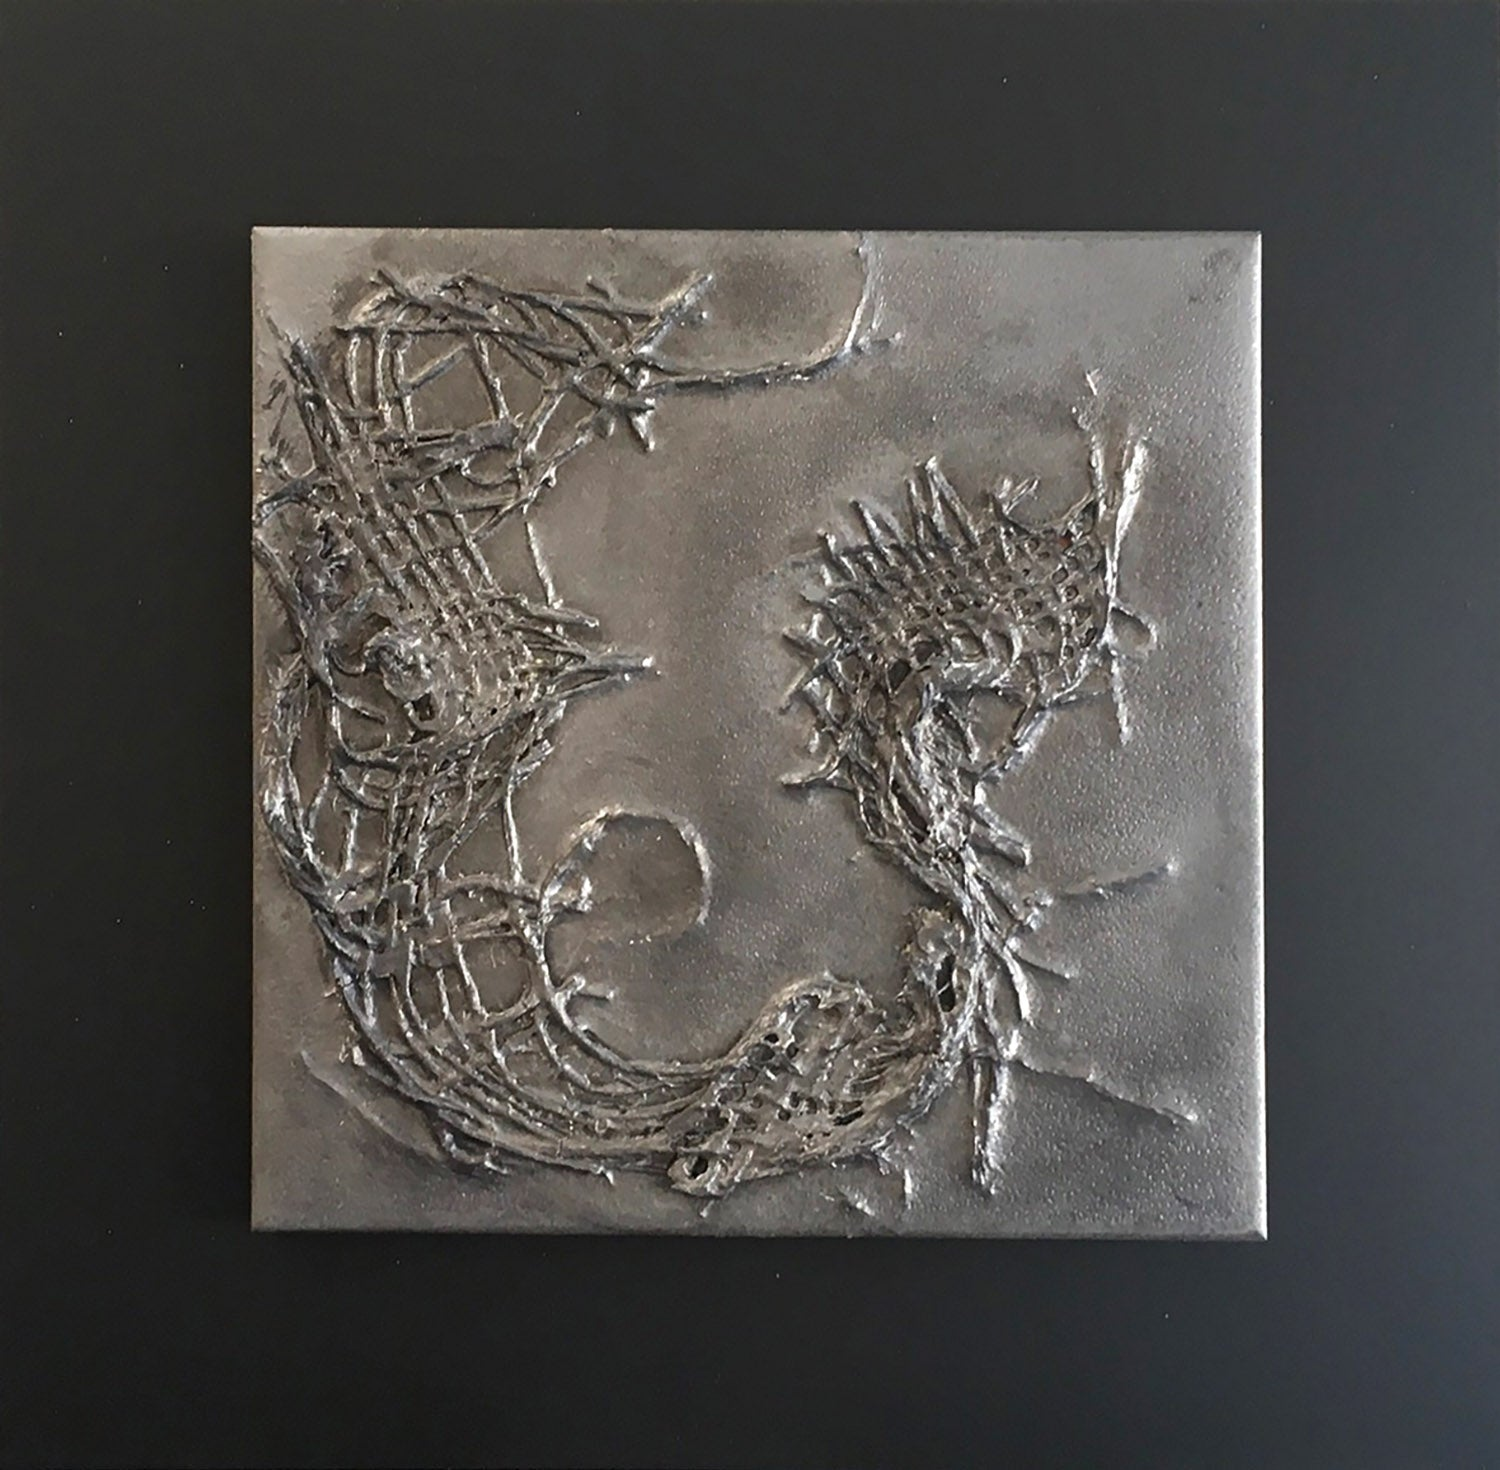 "THE BEAST AWAKENS, Ceramic Tile on Steel, 12""H x 12""W, 2020"